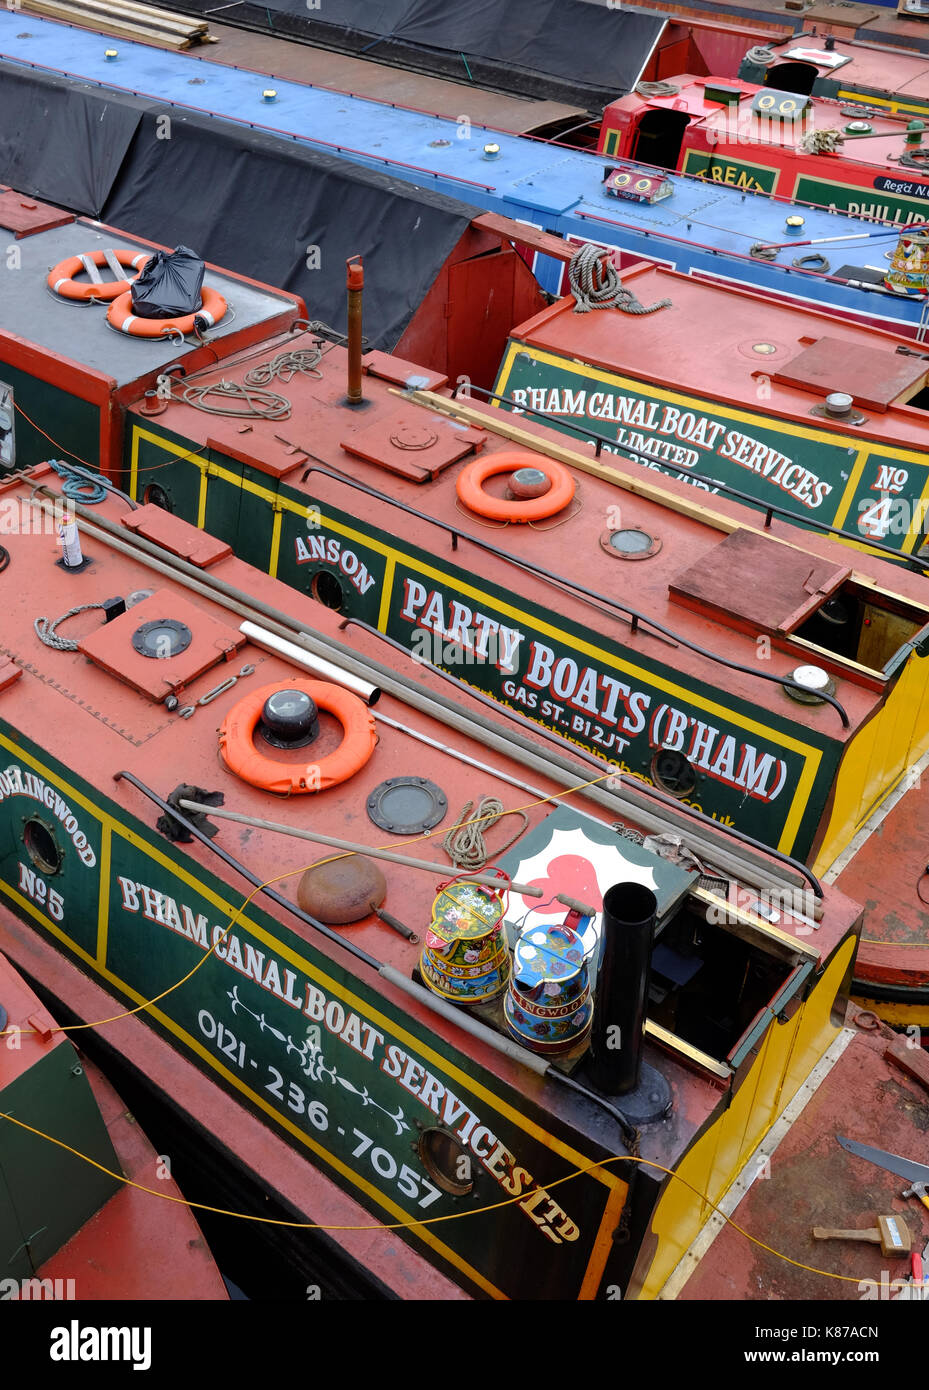 narrow boats in Gas Street Basin, on the historic canal network in Birmingham, England - Stock Image